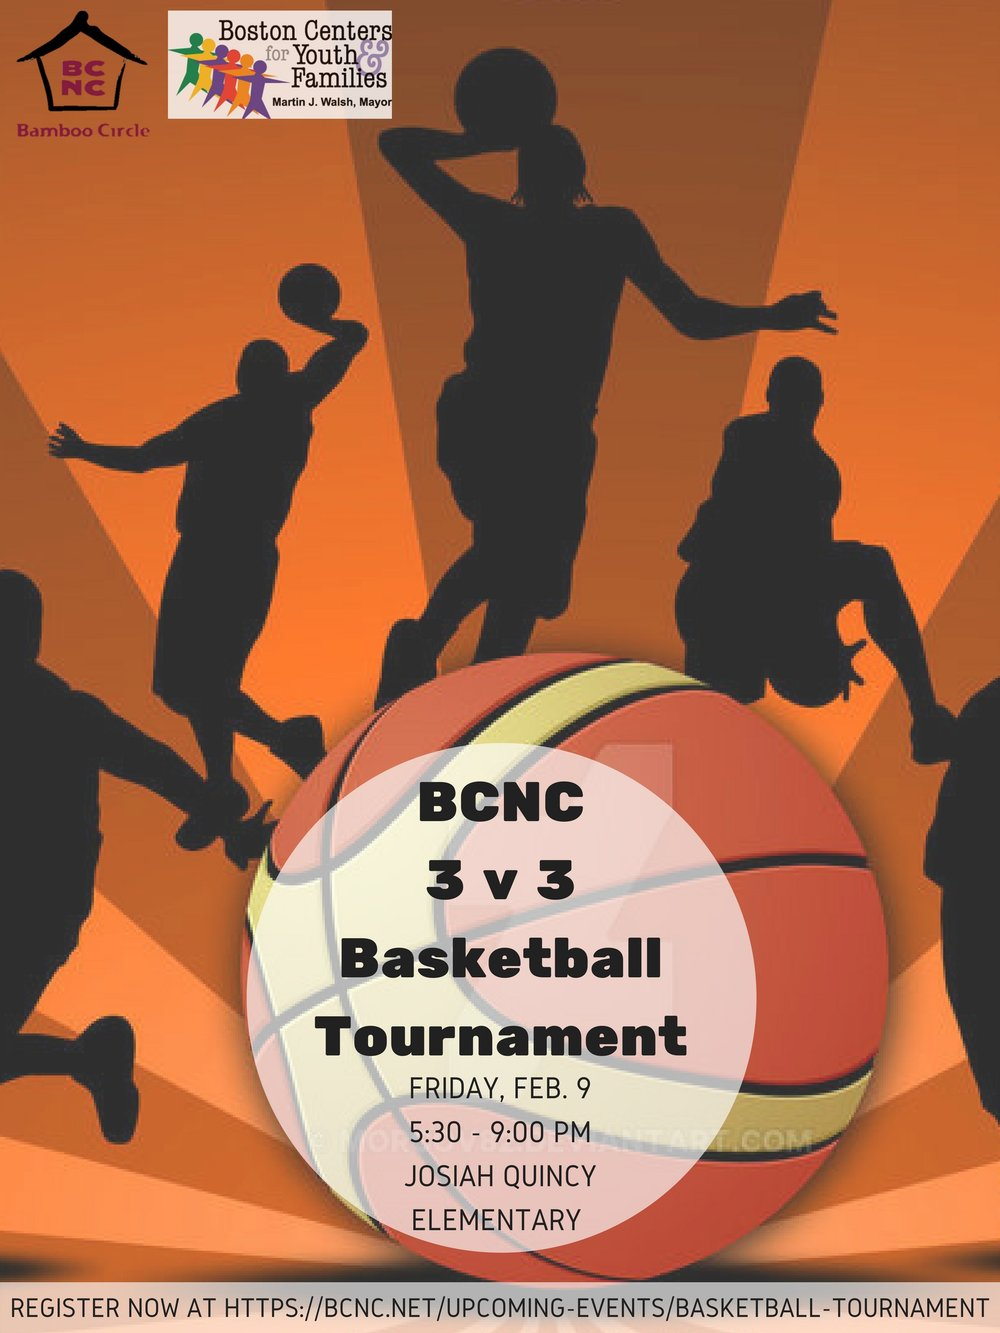 2018.01.24 Basketball tournament flyer.jpg